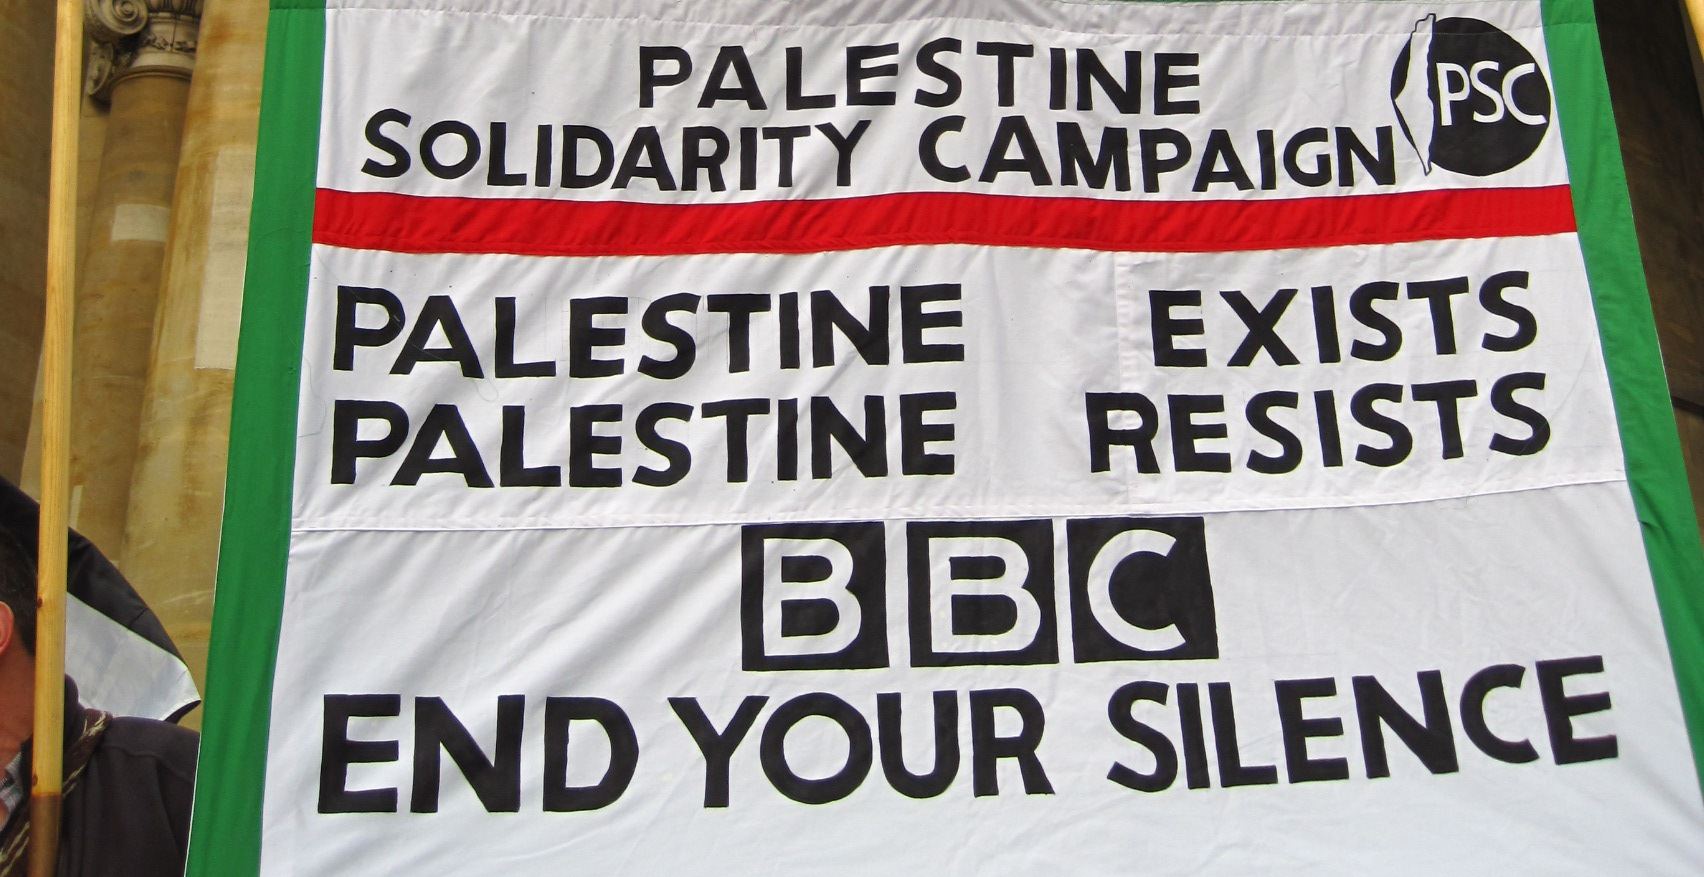 how to call palestine from uk